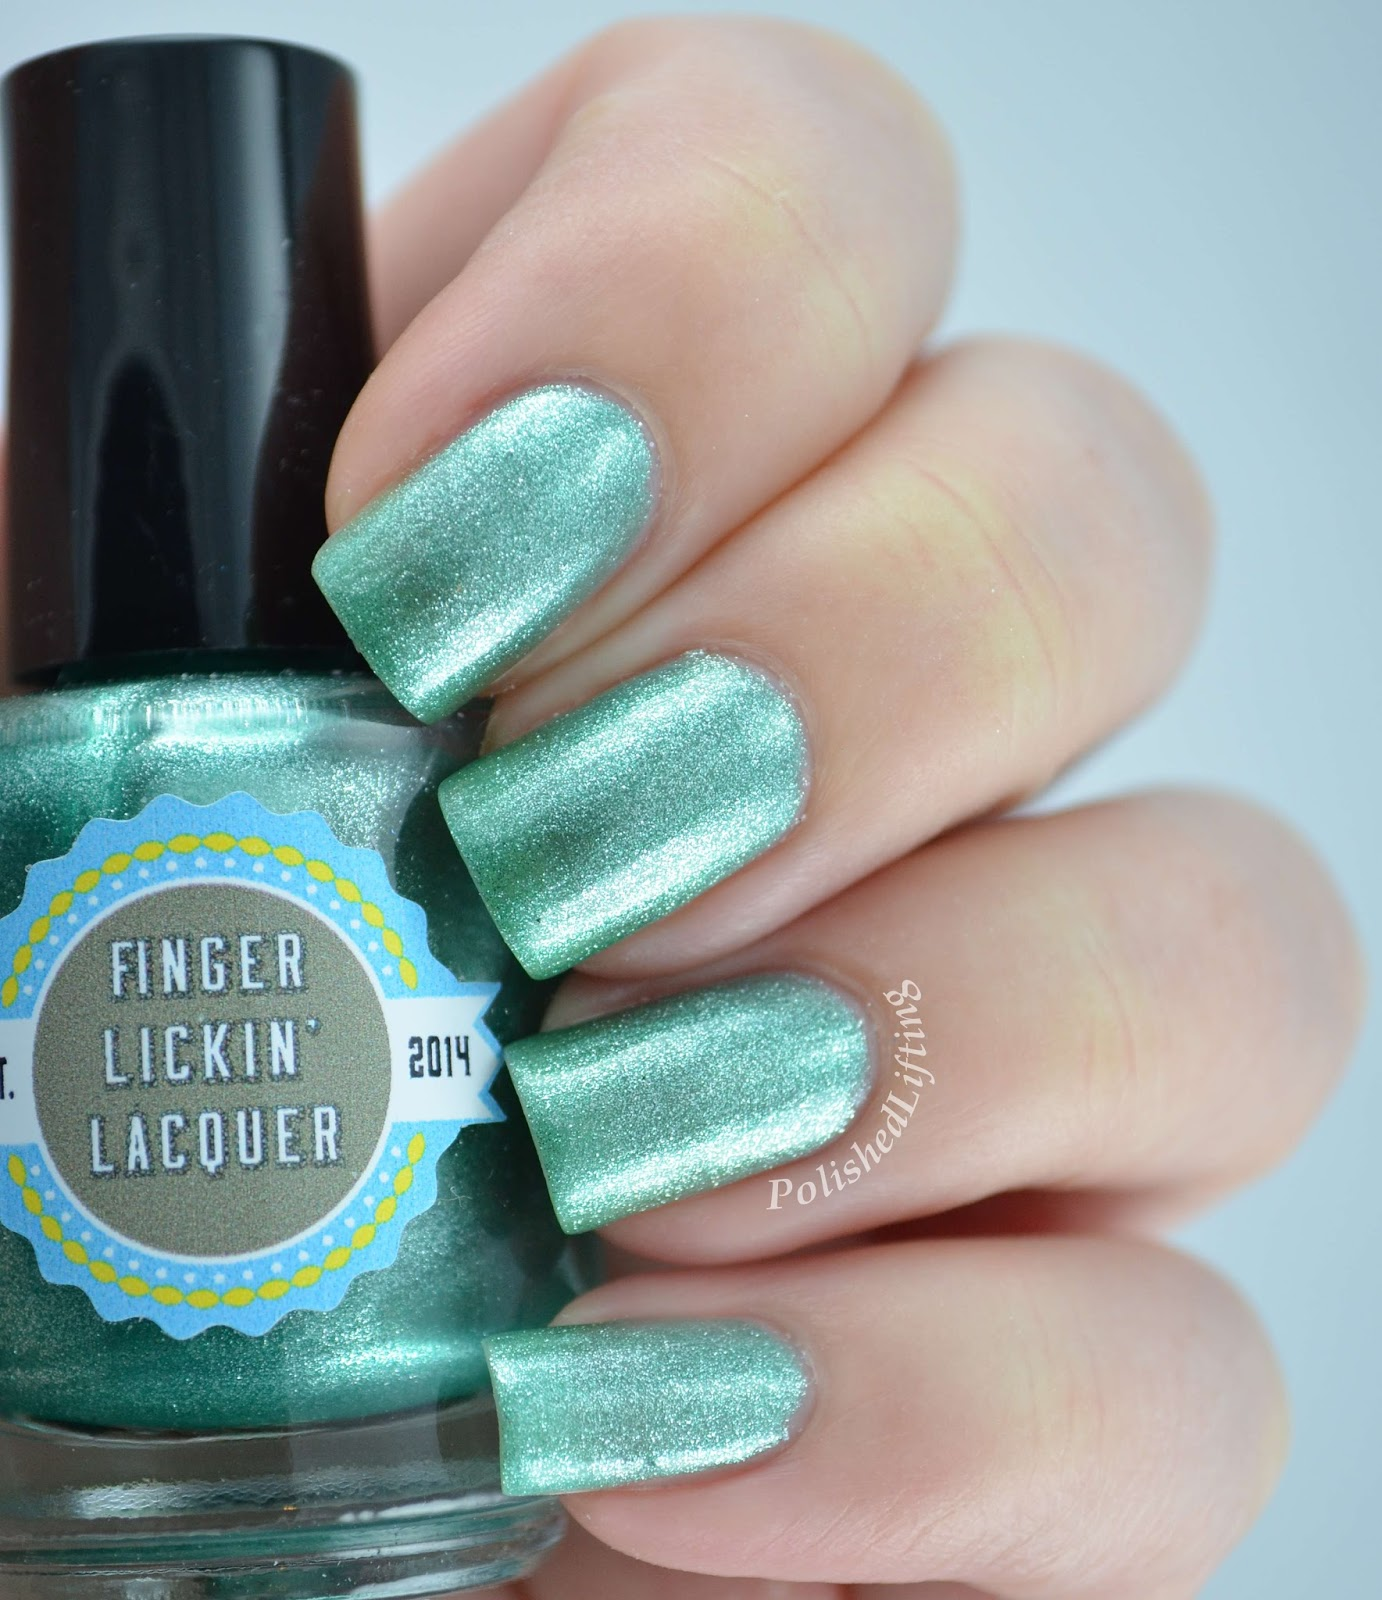 Finger Lickin' Lacquer Chrome for the Holidays